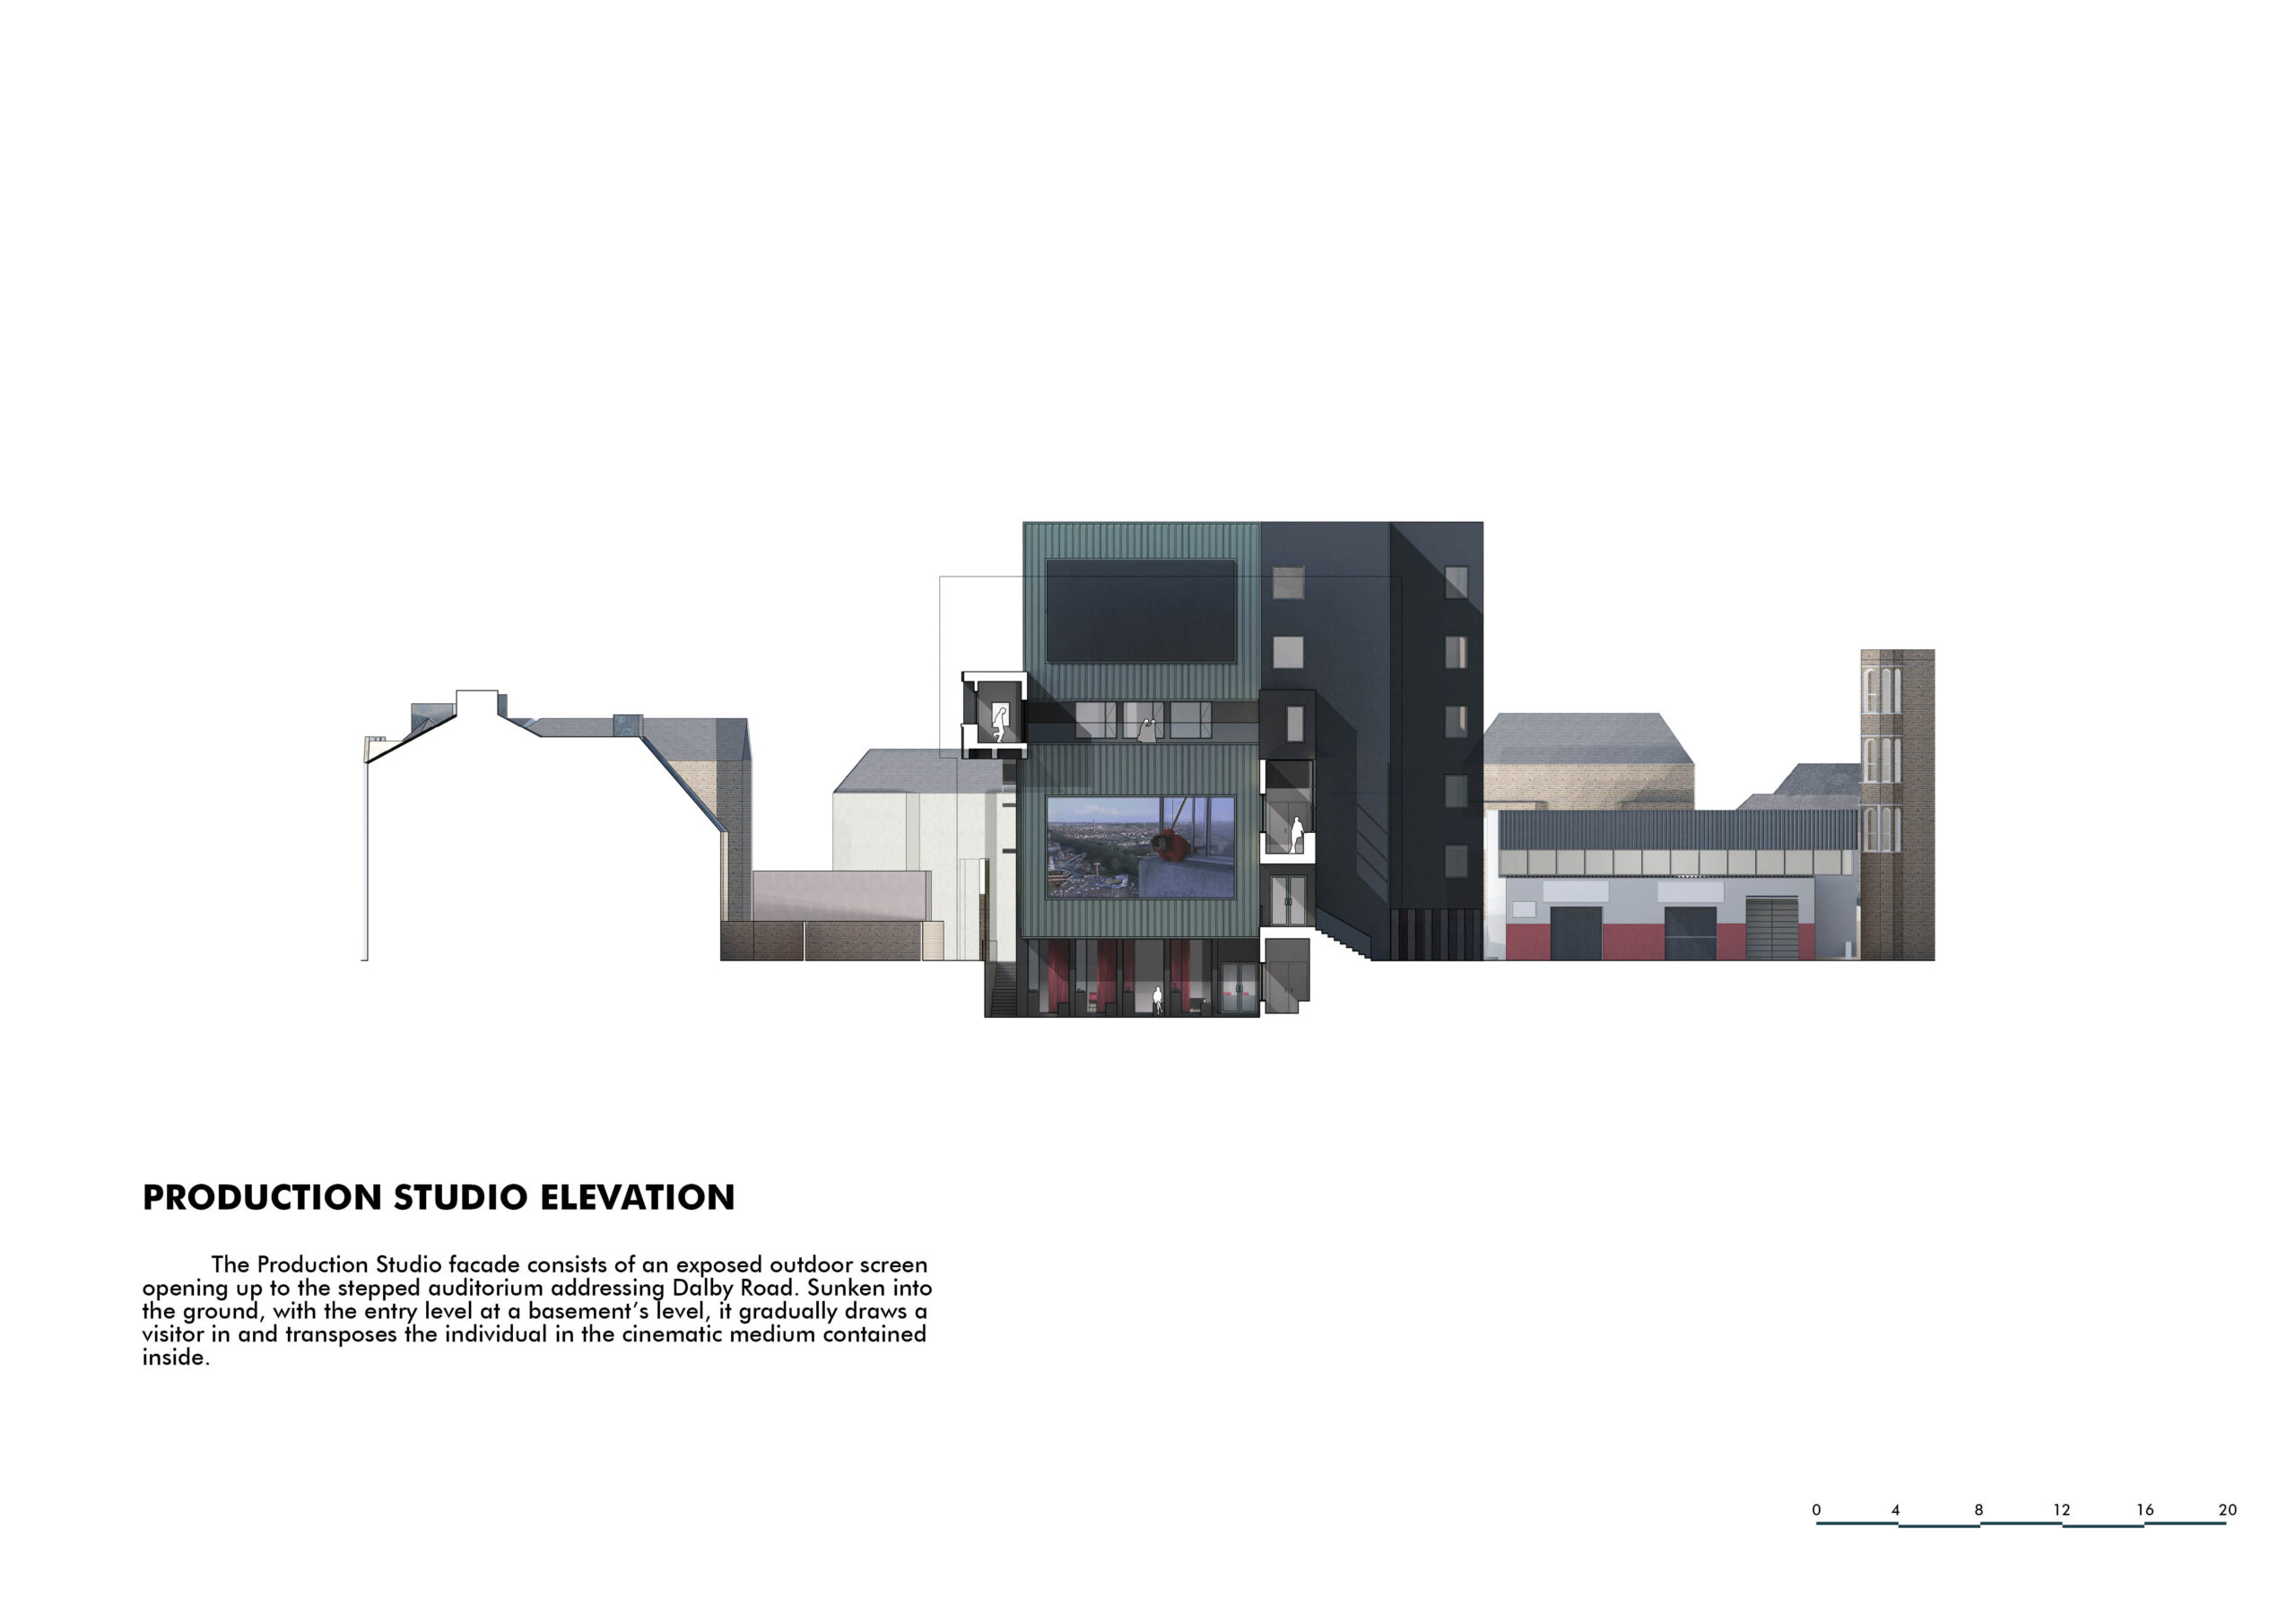 Production Studio elevation